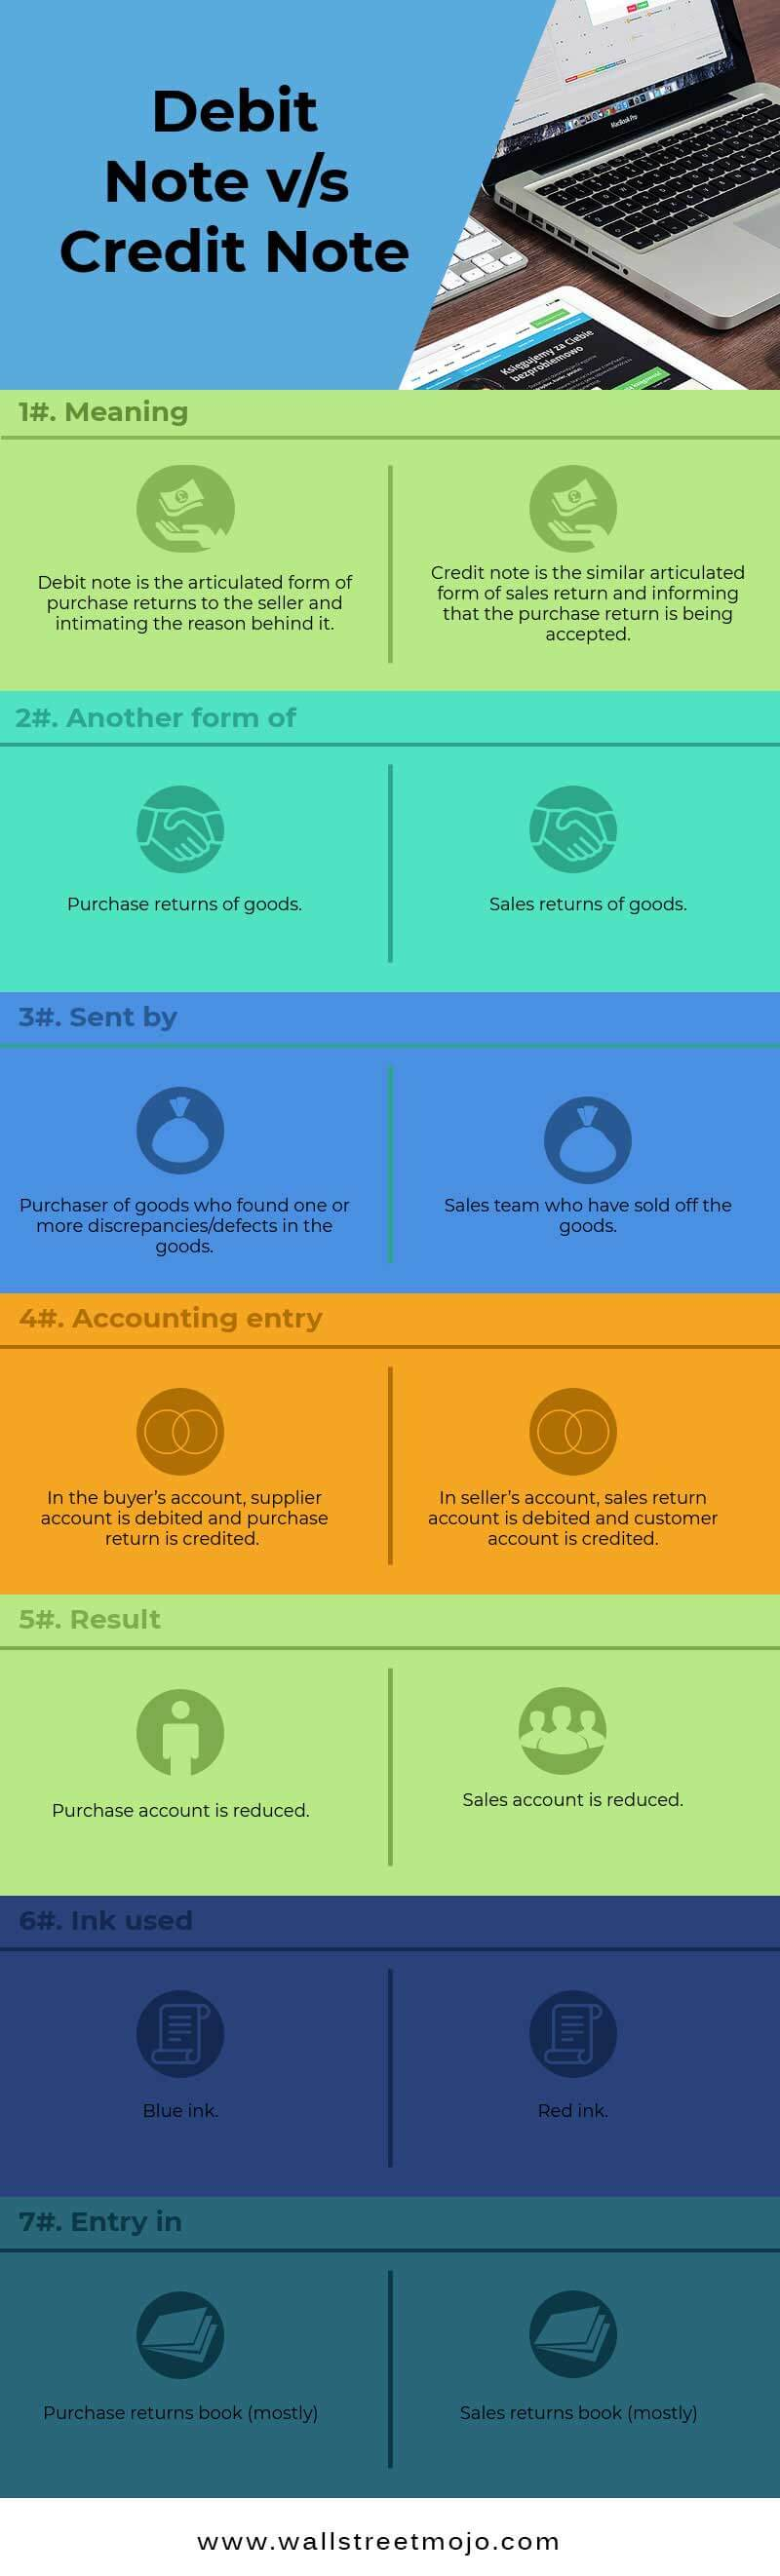 Debit Note Vs Credit Note Top 7 Differences (Infographics) Debit Note Vs Credit  Note Debit Note Vs Credit Note Debit Note Issued By Supplier  Debit Note Issued By Supplier